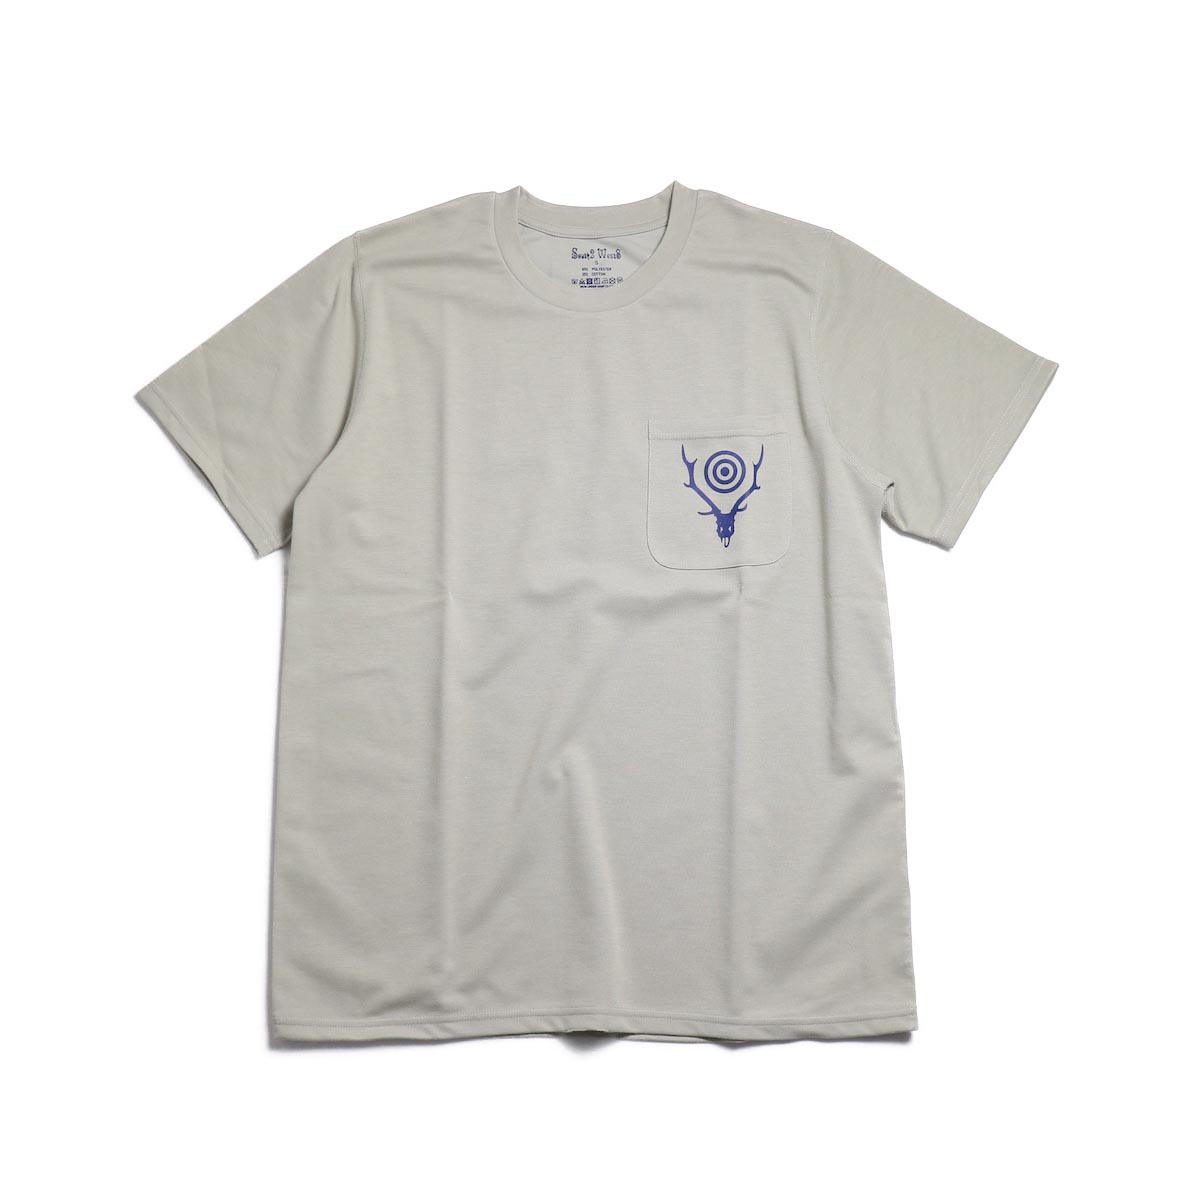 SOUTH2 WEST8 / Round Pocket Tee (Circle Horn) -Gray